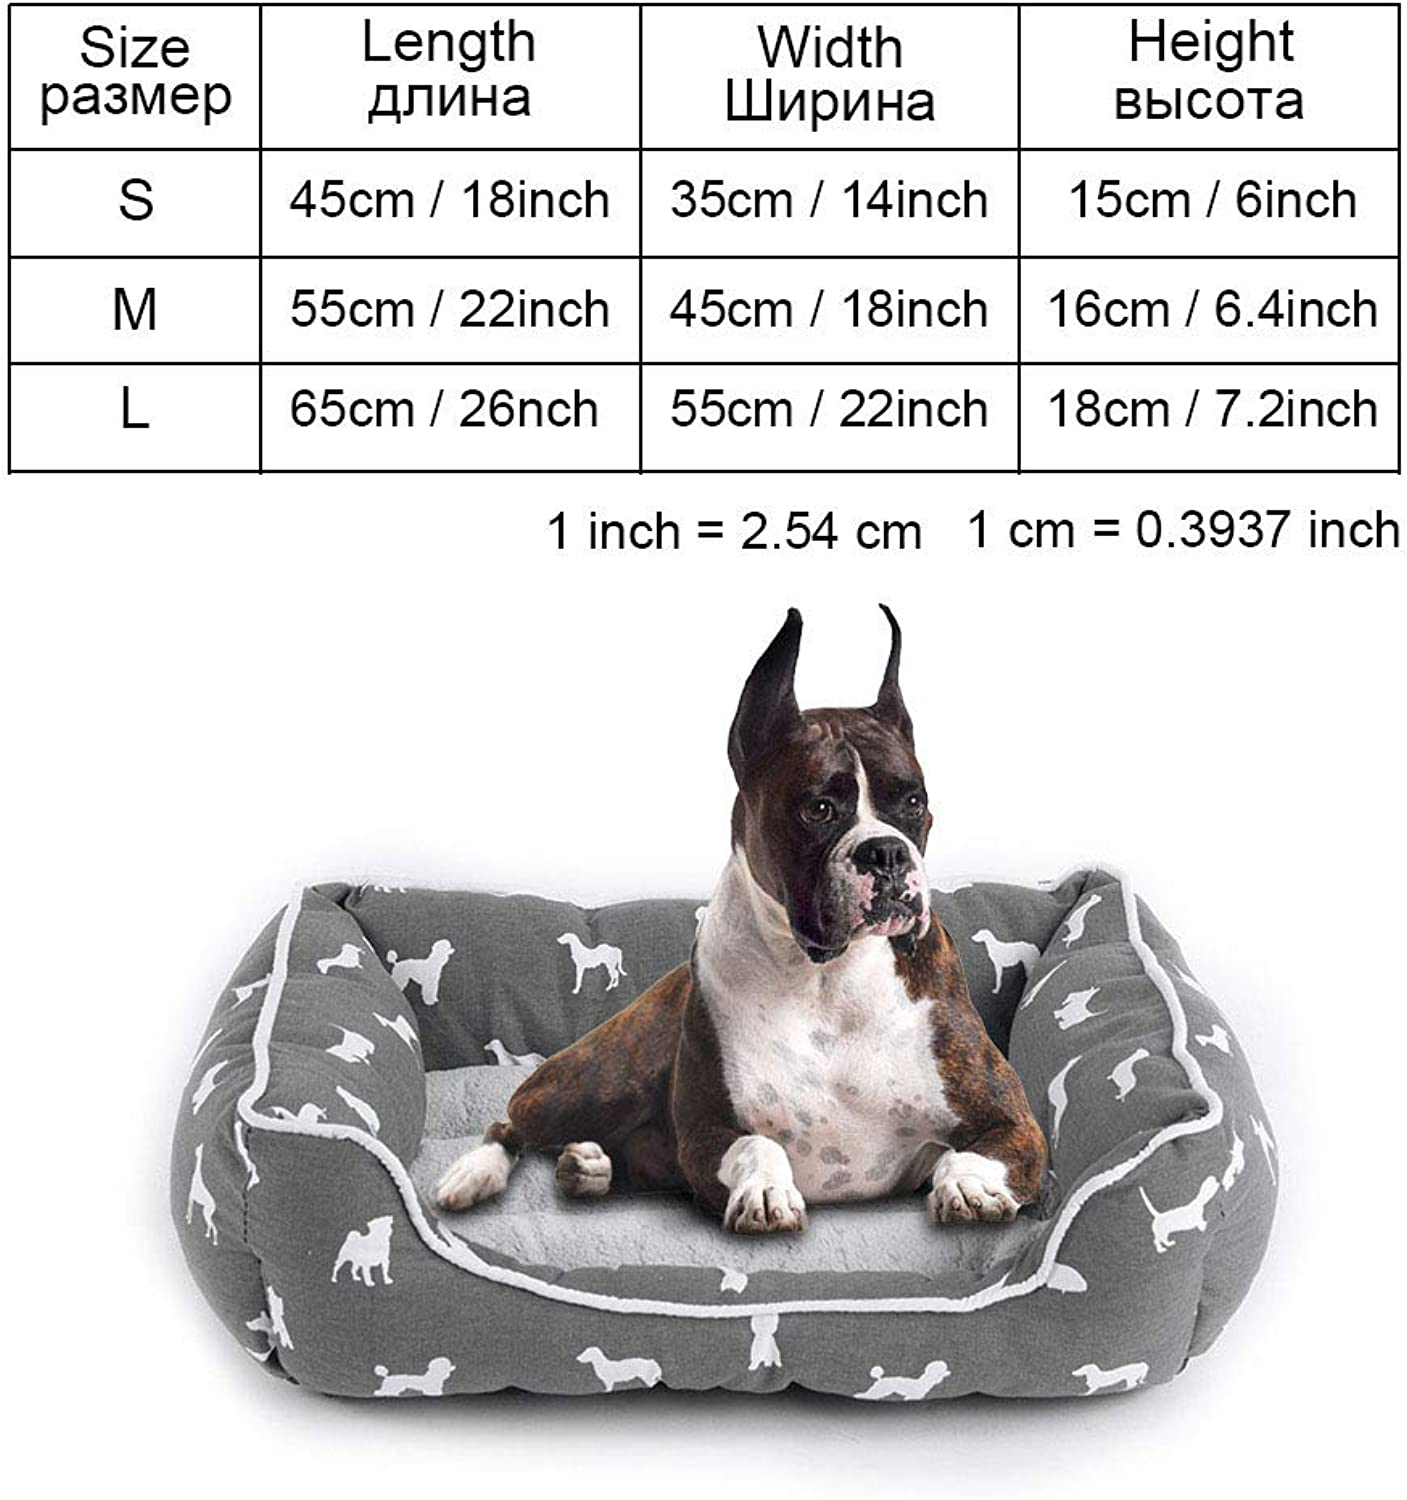 Cookisn Dog Bed Bench Dog Beds Mats for Small Medium Large Dogs Puppy Bed Cat Pet Kennel Lounger Dog Bed Sofa House for Cat Pet Products greypy0104 L